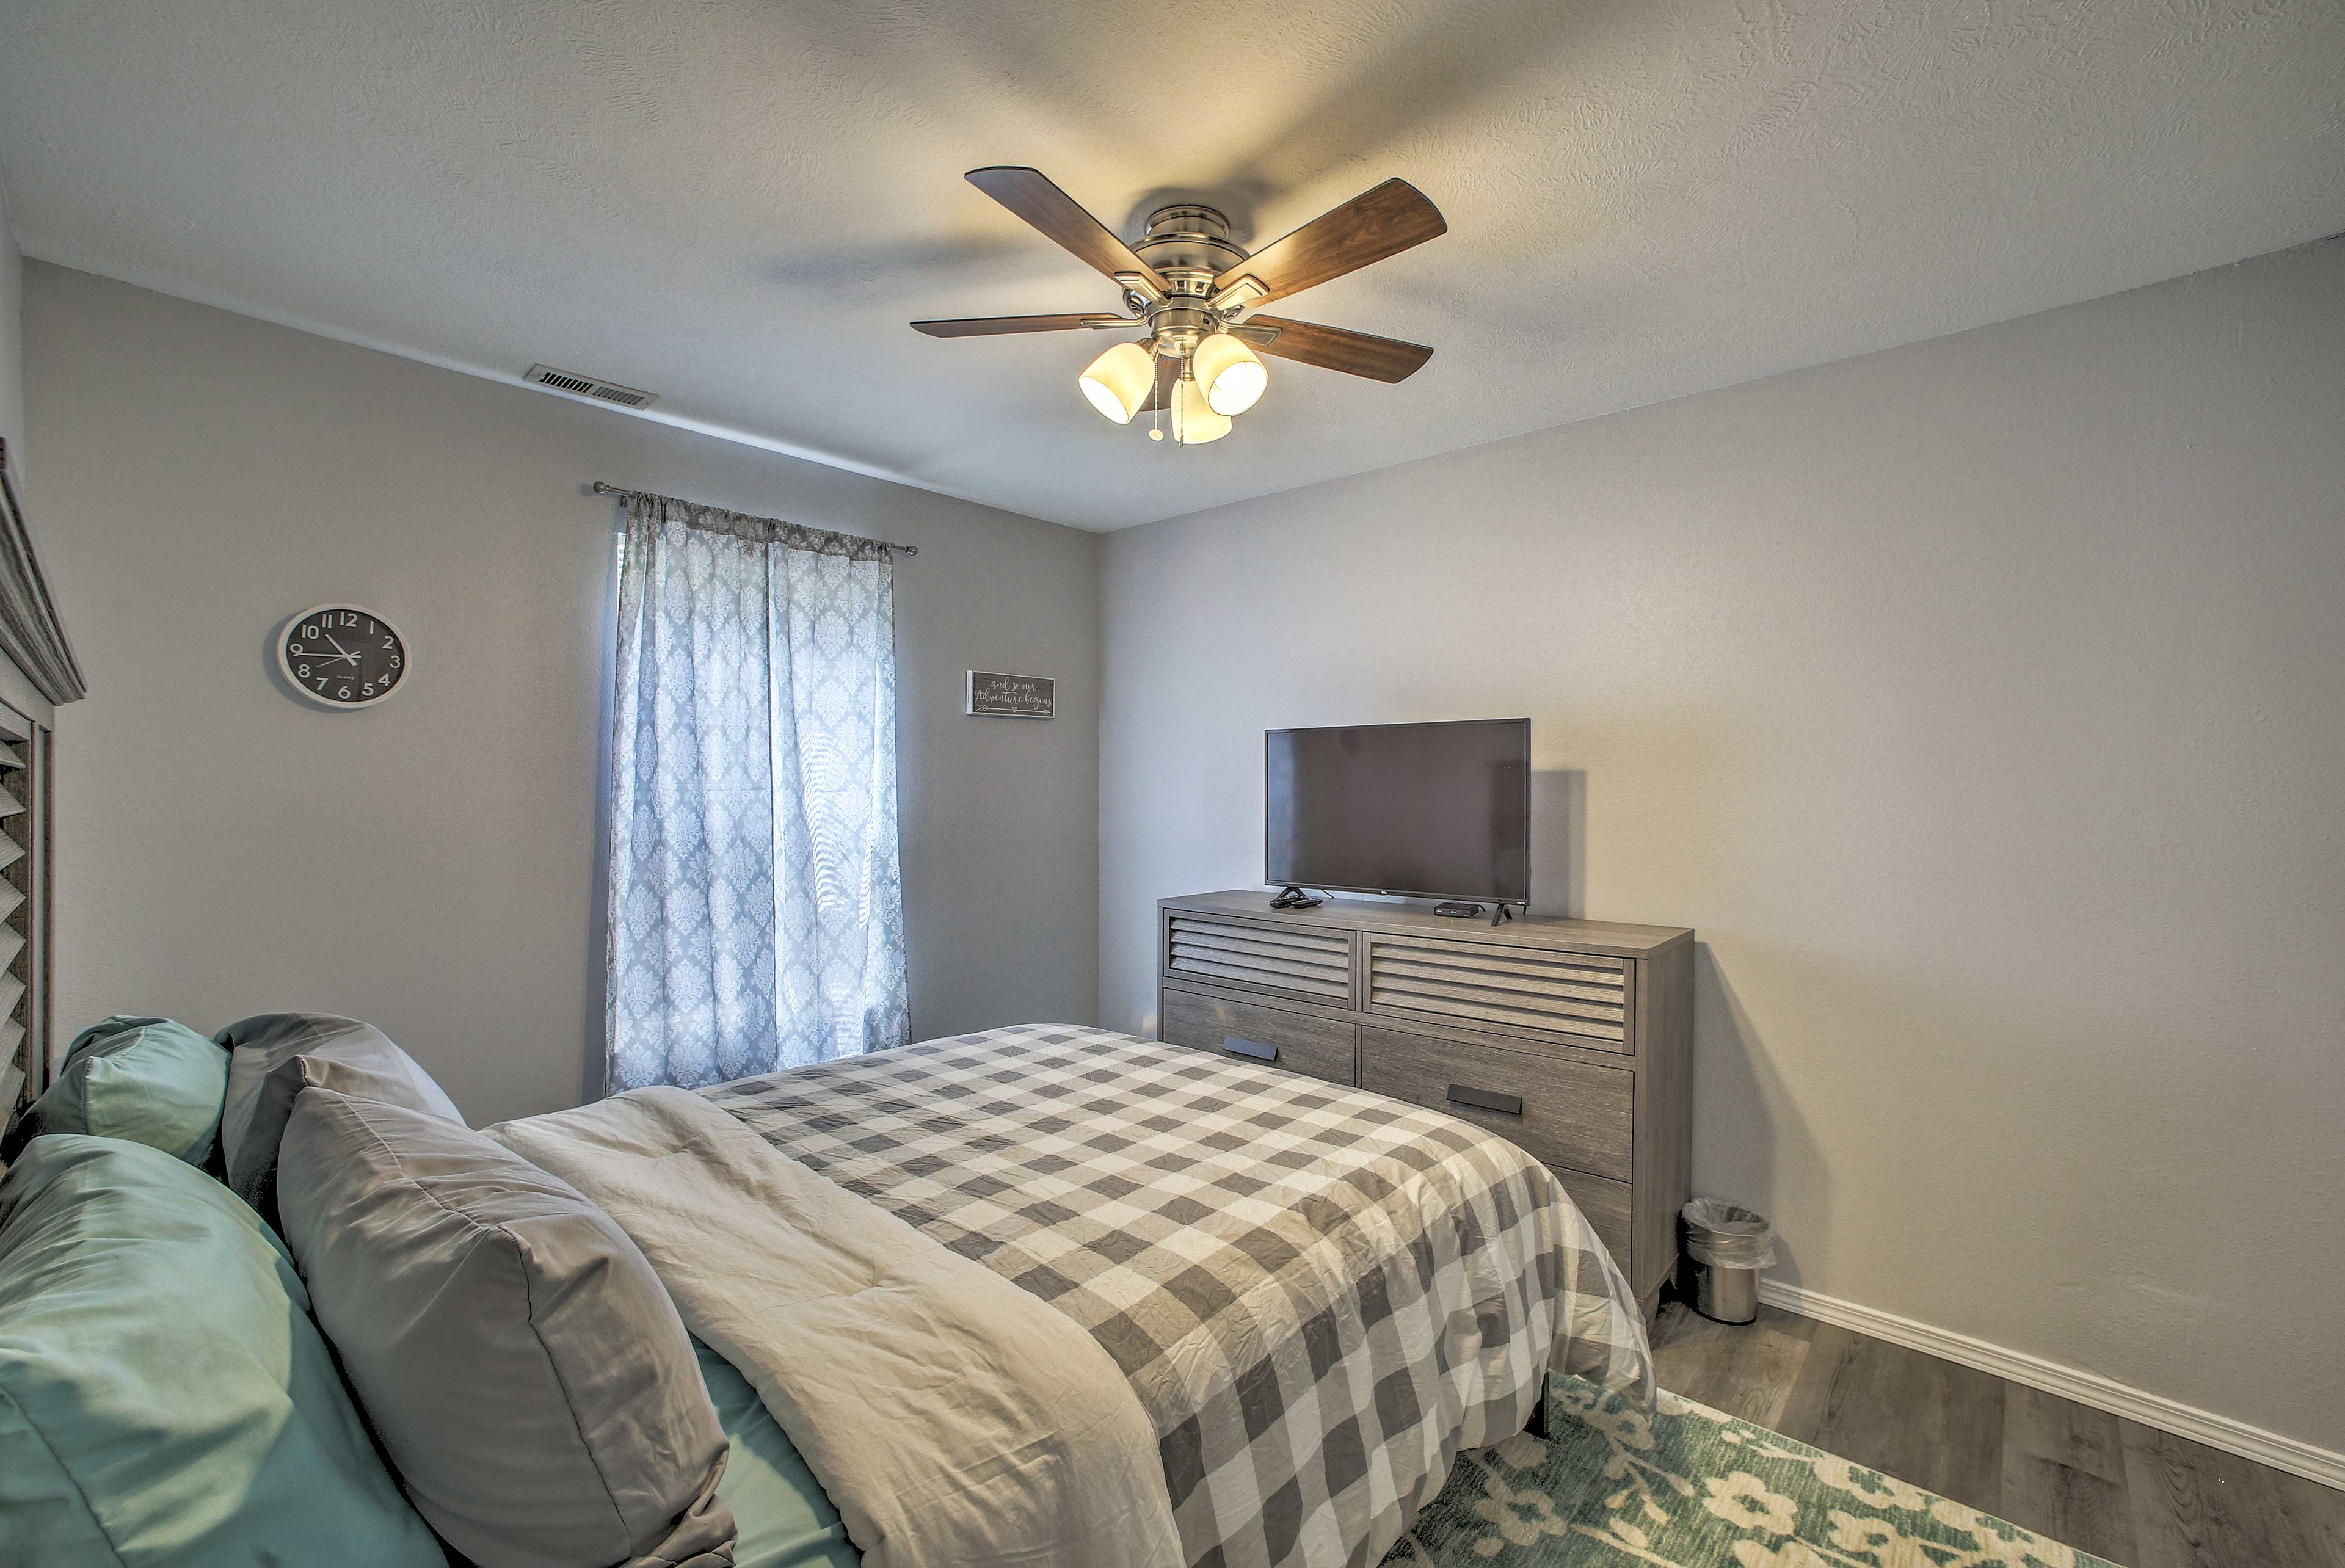 The second bedroom houses a queen bed and Smart TV.